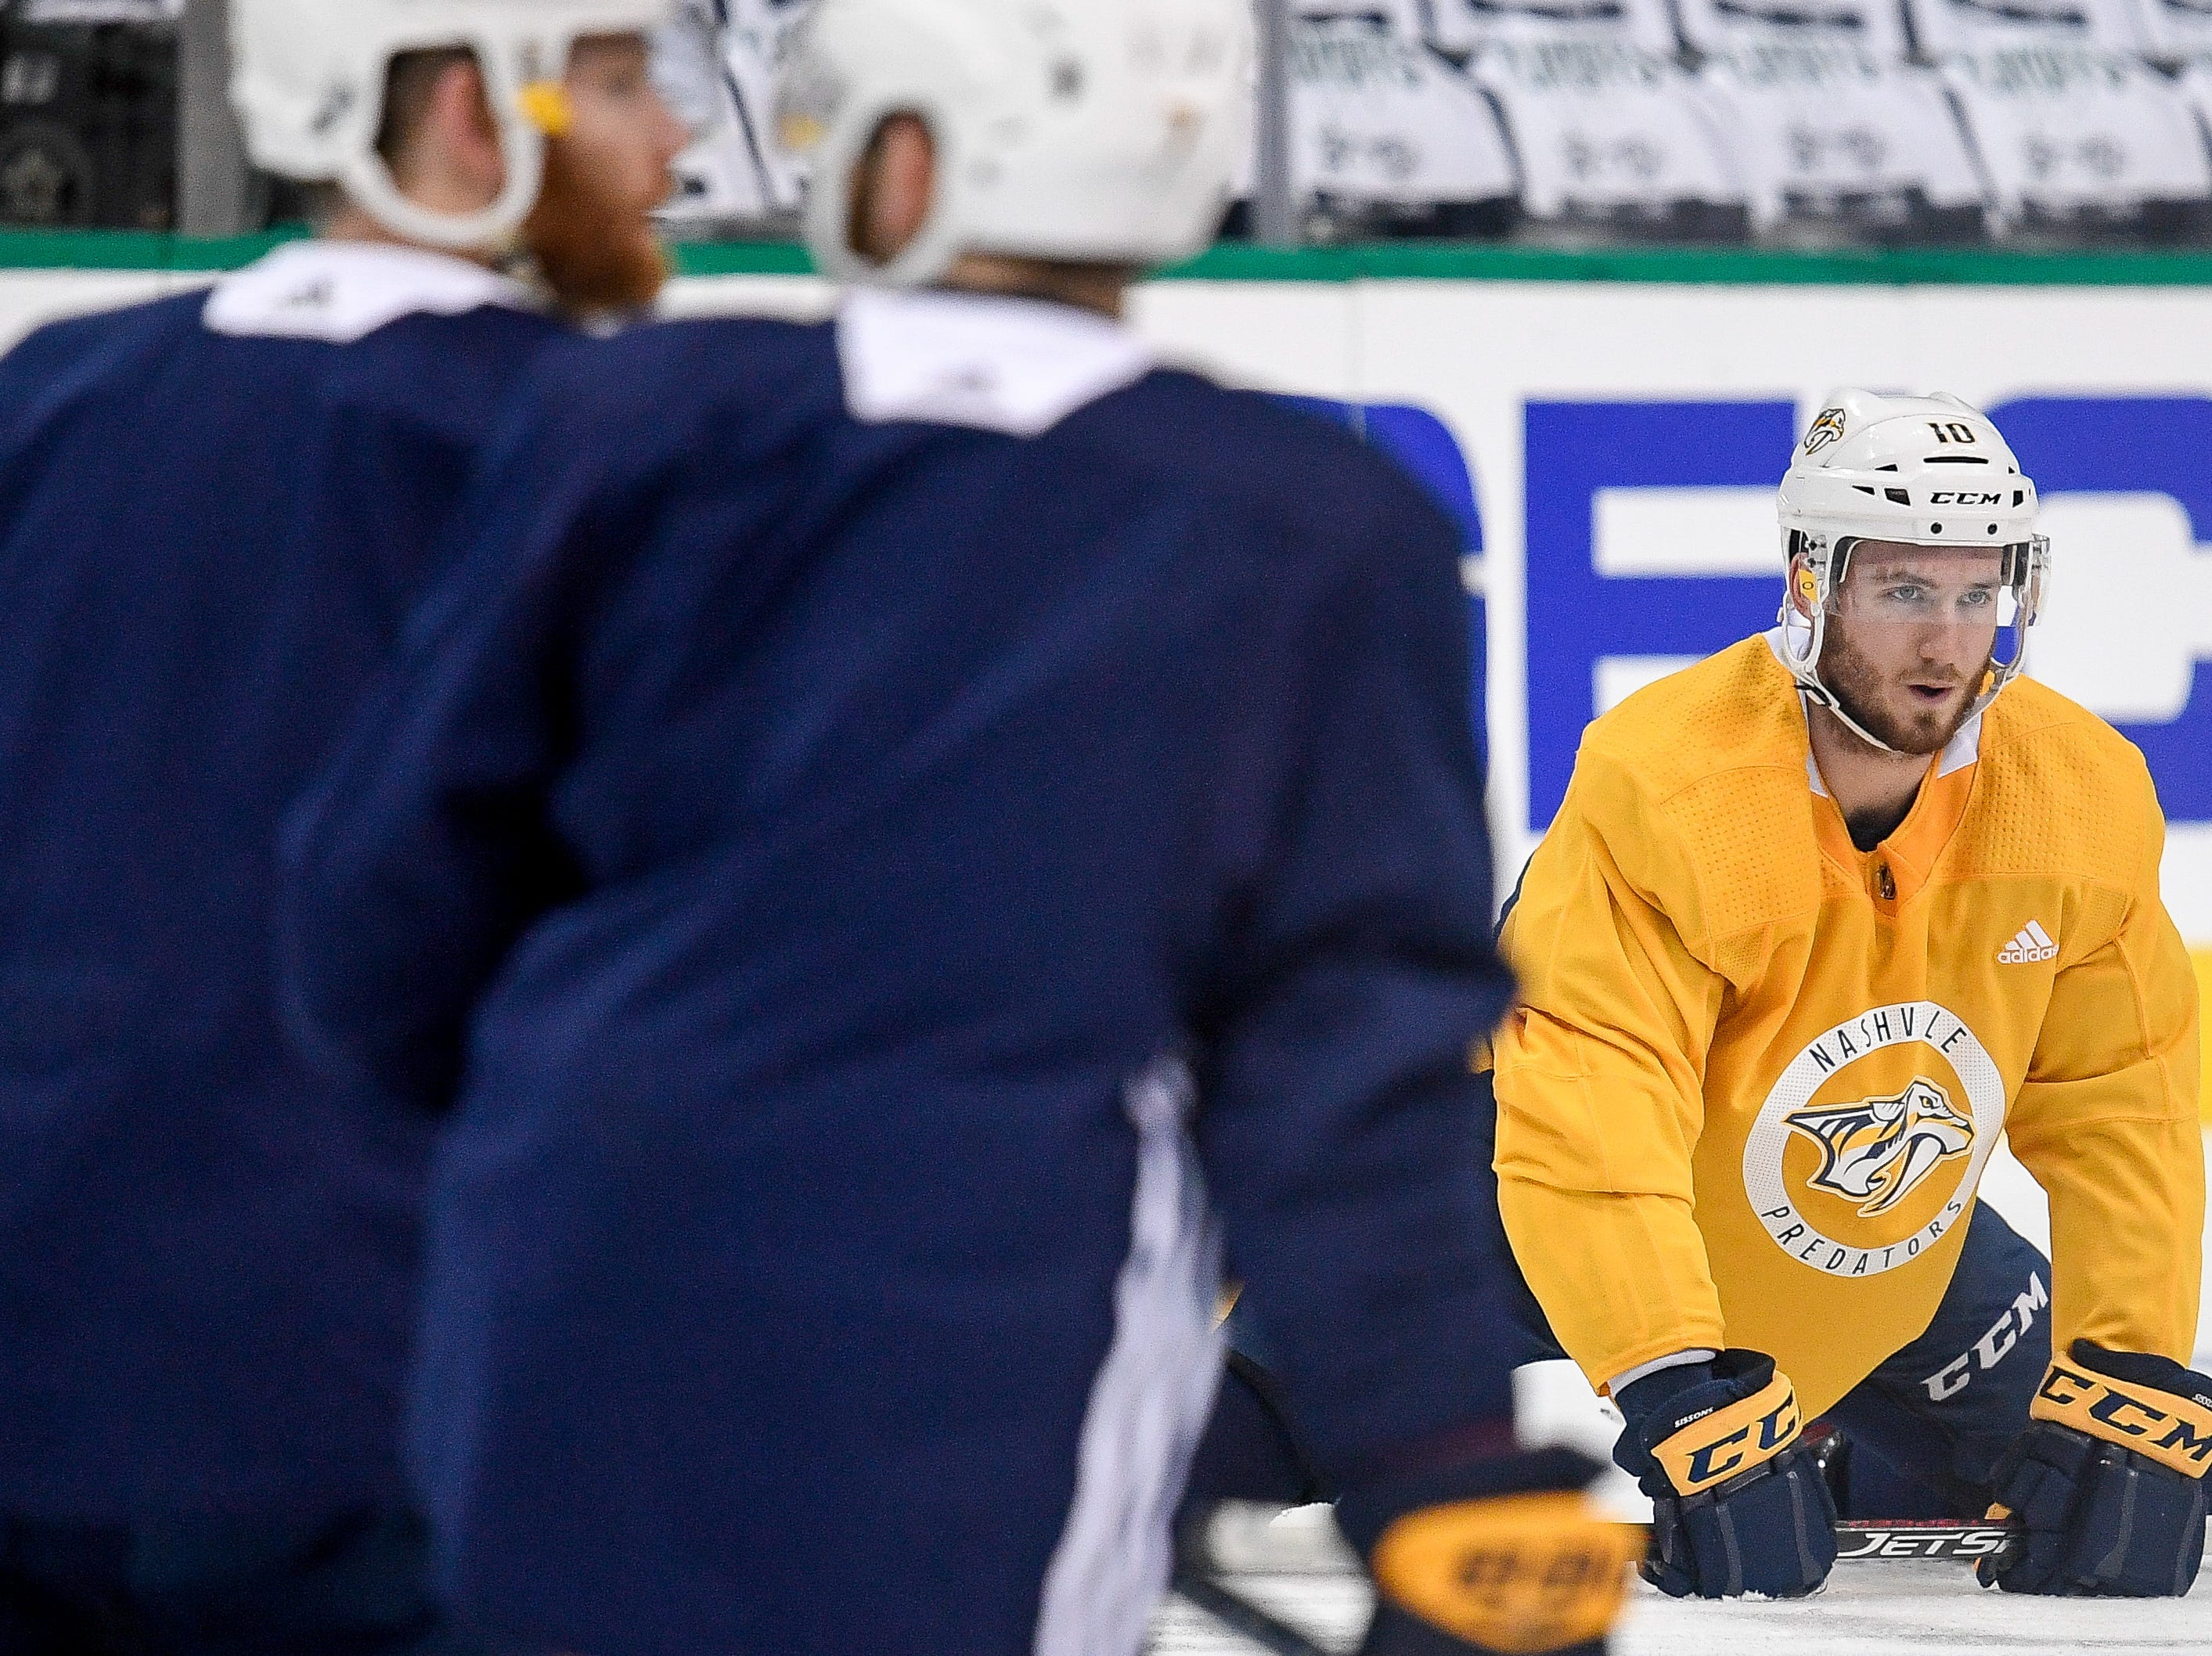 Nashville Predators center Colton Sissons (10) warms up during practice before the divisional semifinal game against the Dallas Stars at the American Airlines Center in Dallas, Texas, Monday, April 22, 2019.